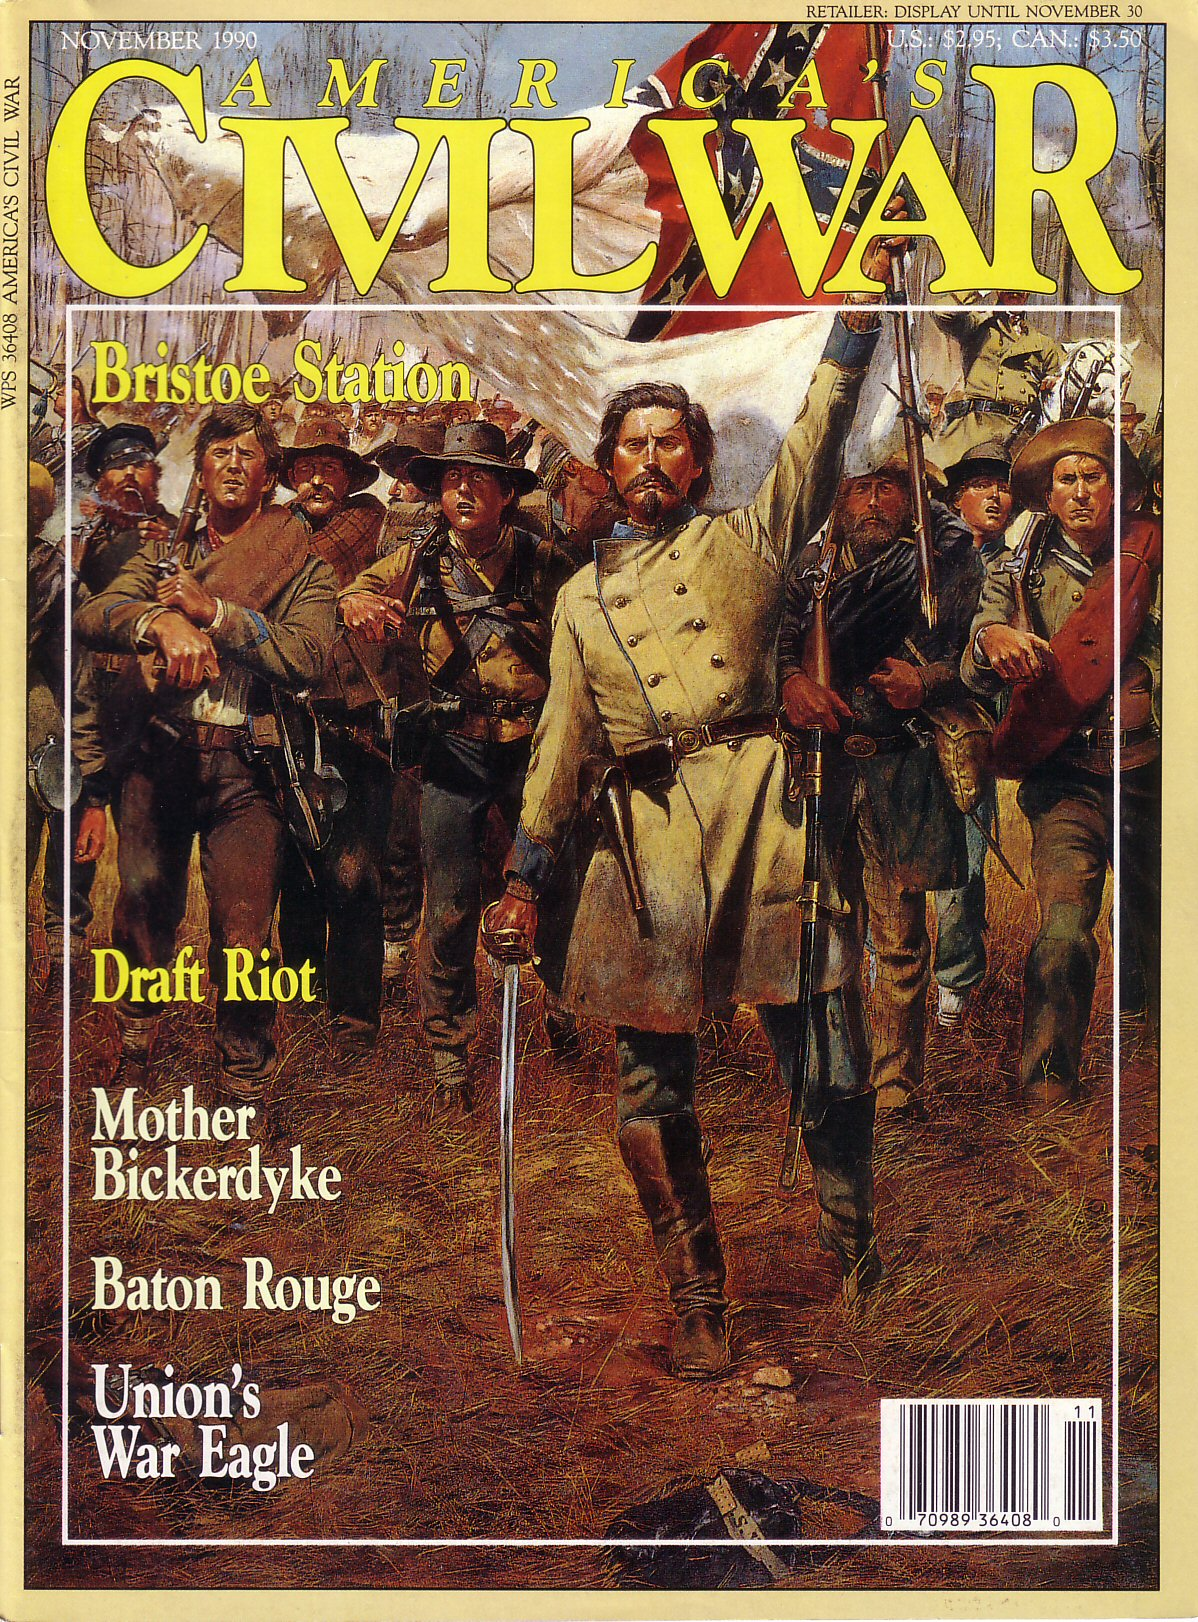 Americas Civil War, Volume 3, Number 4 (November 1990)